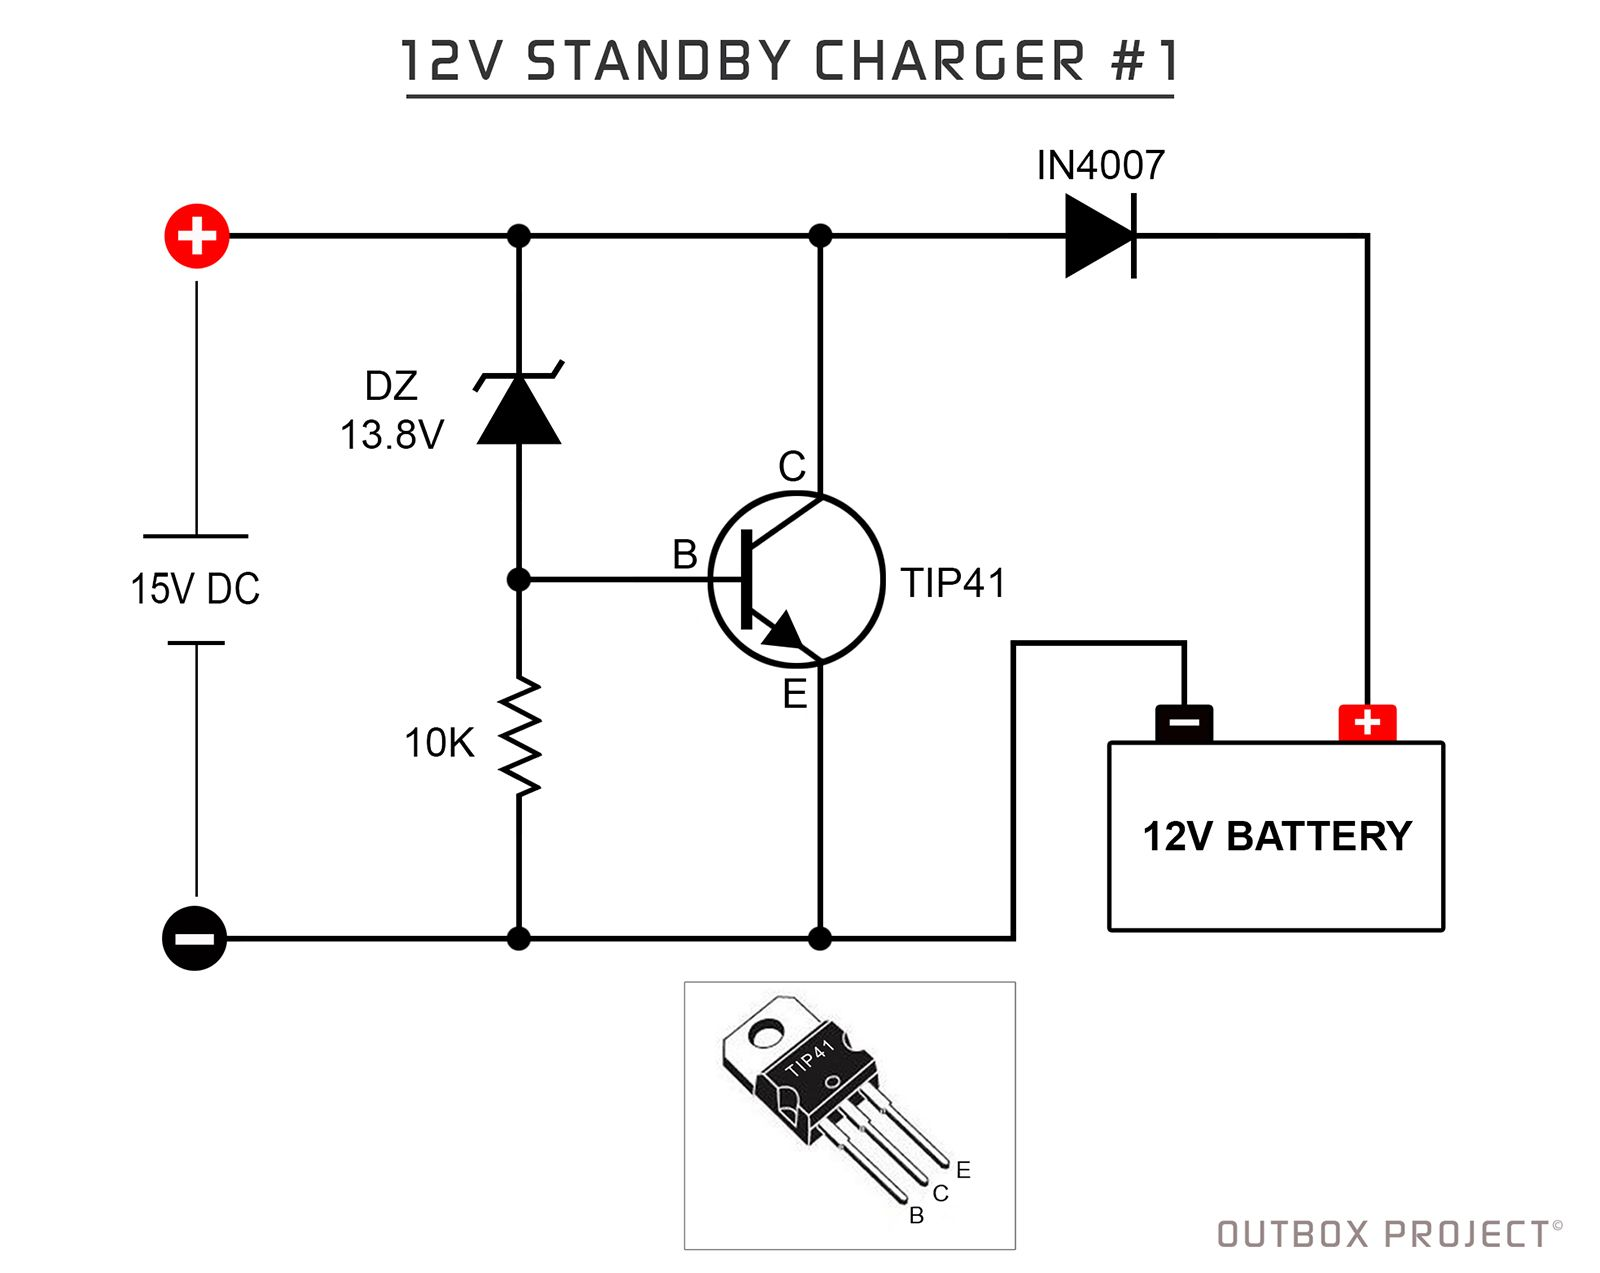 Pin By Alex Souza On Fontes Pinterest Charger Electronics And Rangkaian Relay 5 High Voltage Fonts Projects Circuits Fold Towels